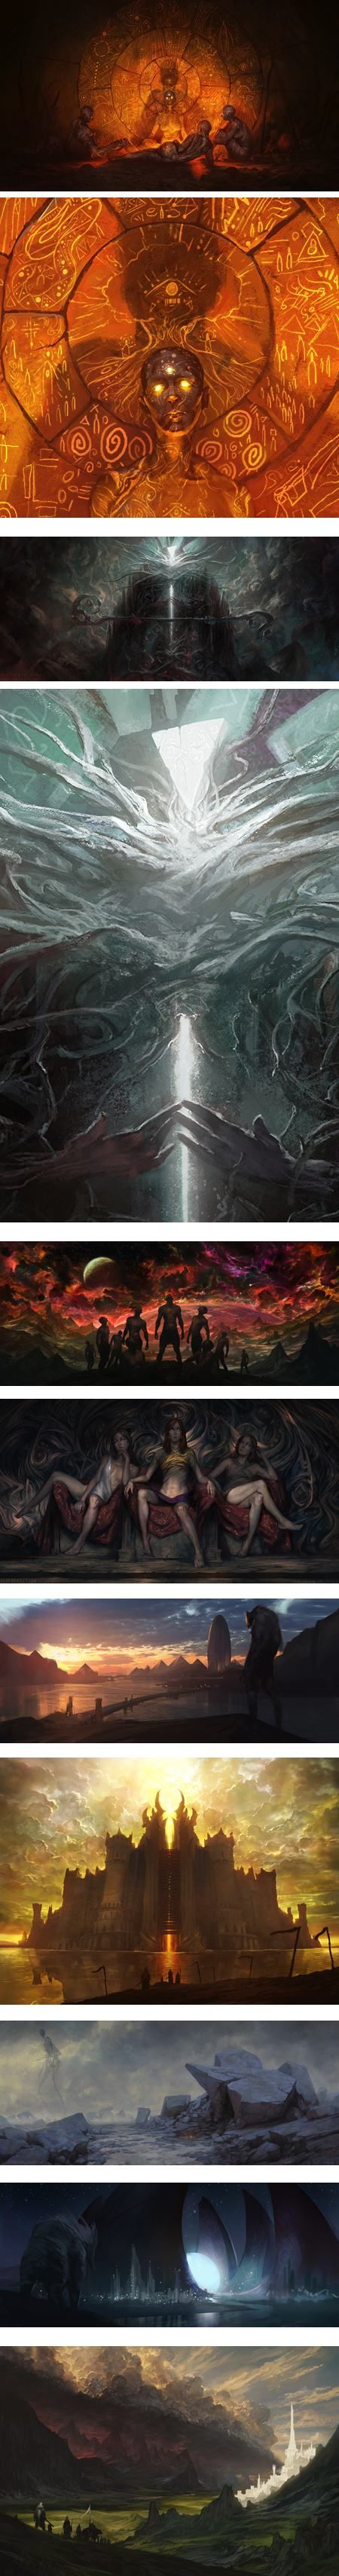 "Noah Bradley, concept art and illustration. Noah Bradley is a concept artist and illustrator, known in particular for his work on the ""Magic: The Gathering"" card-based games."